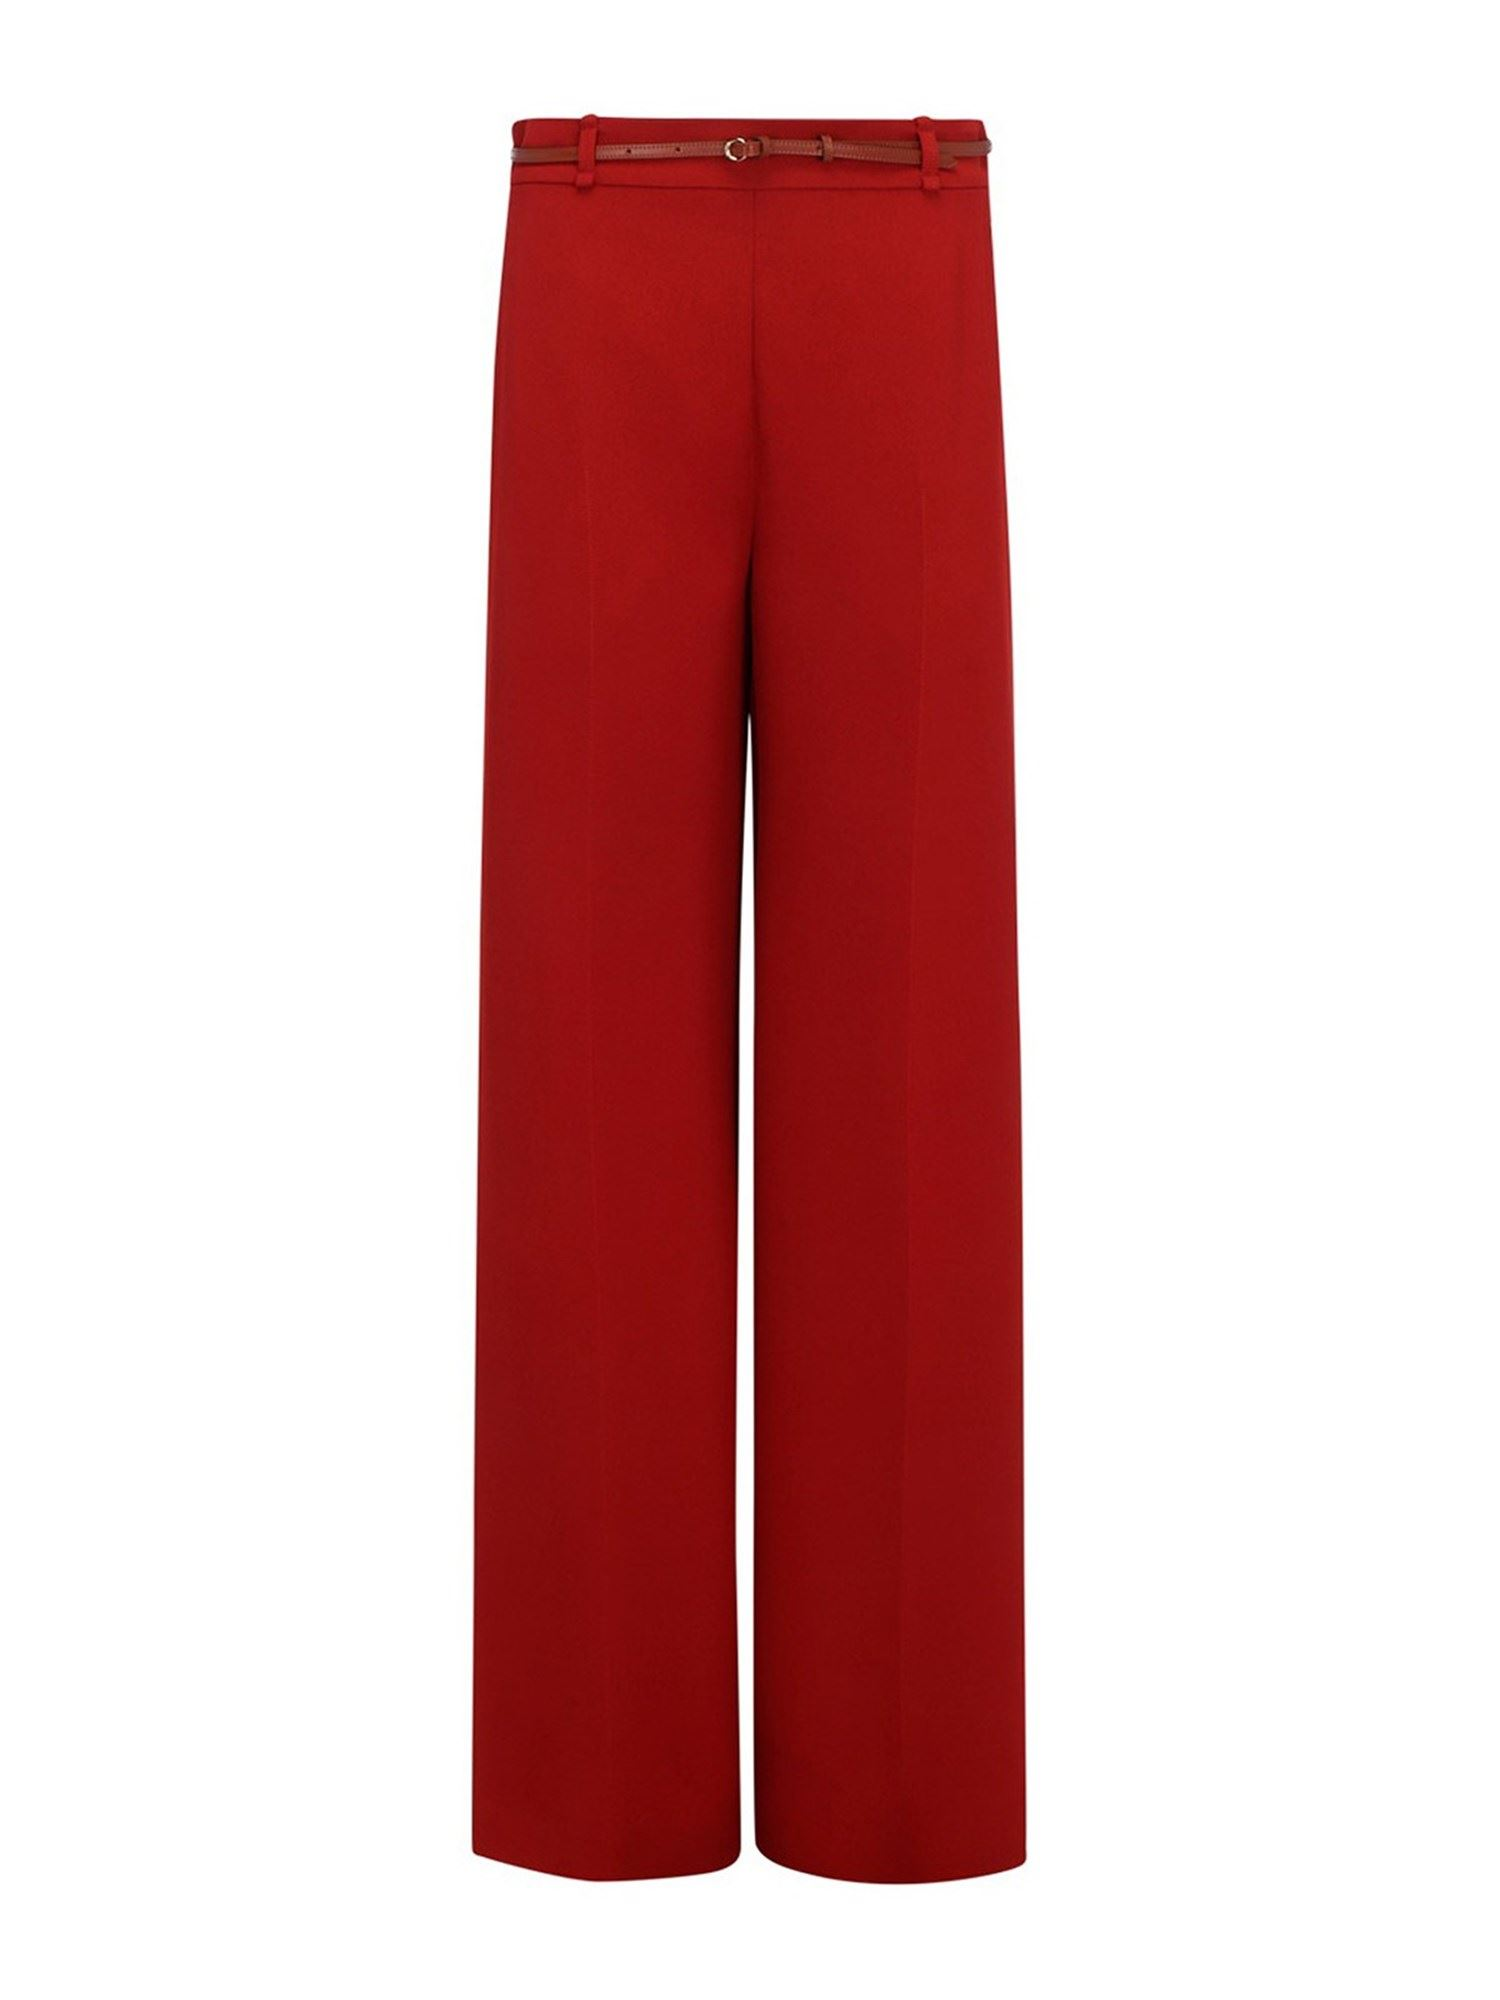 Chloé VISCOSE CRÊPE PANTS IN RED